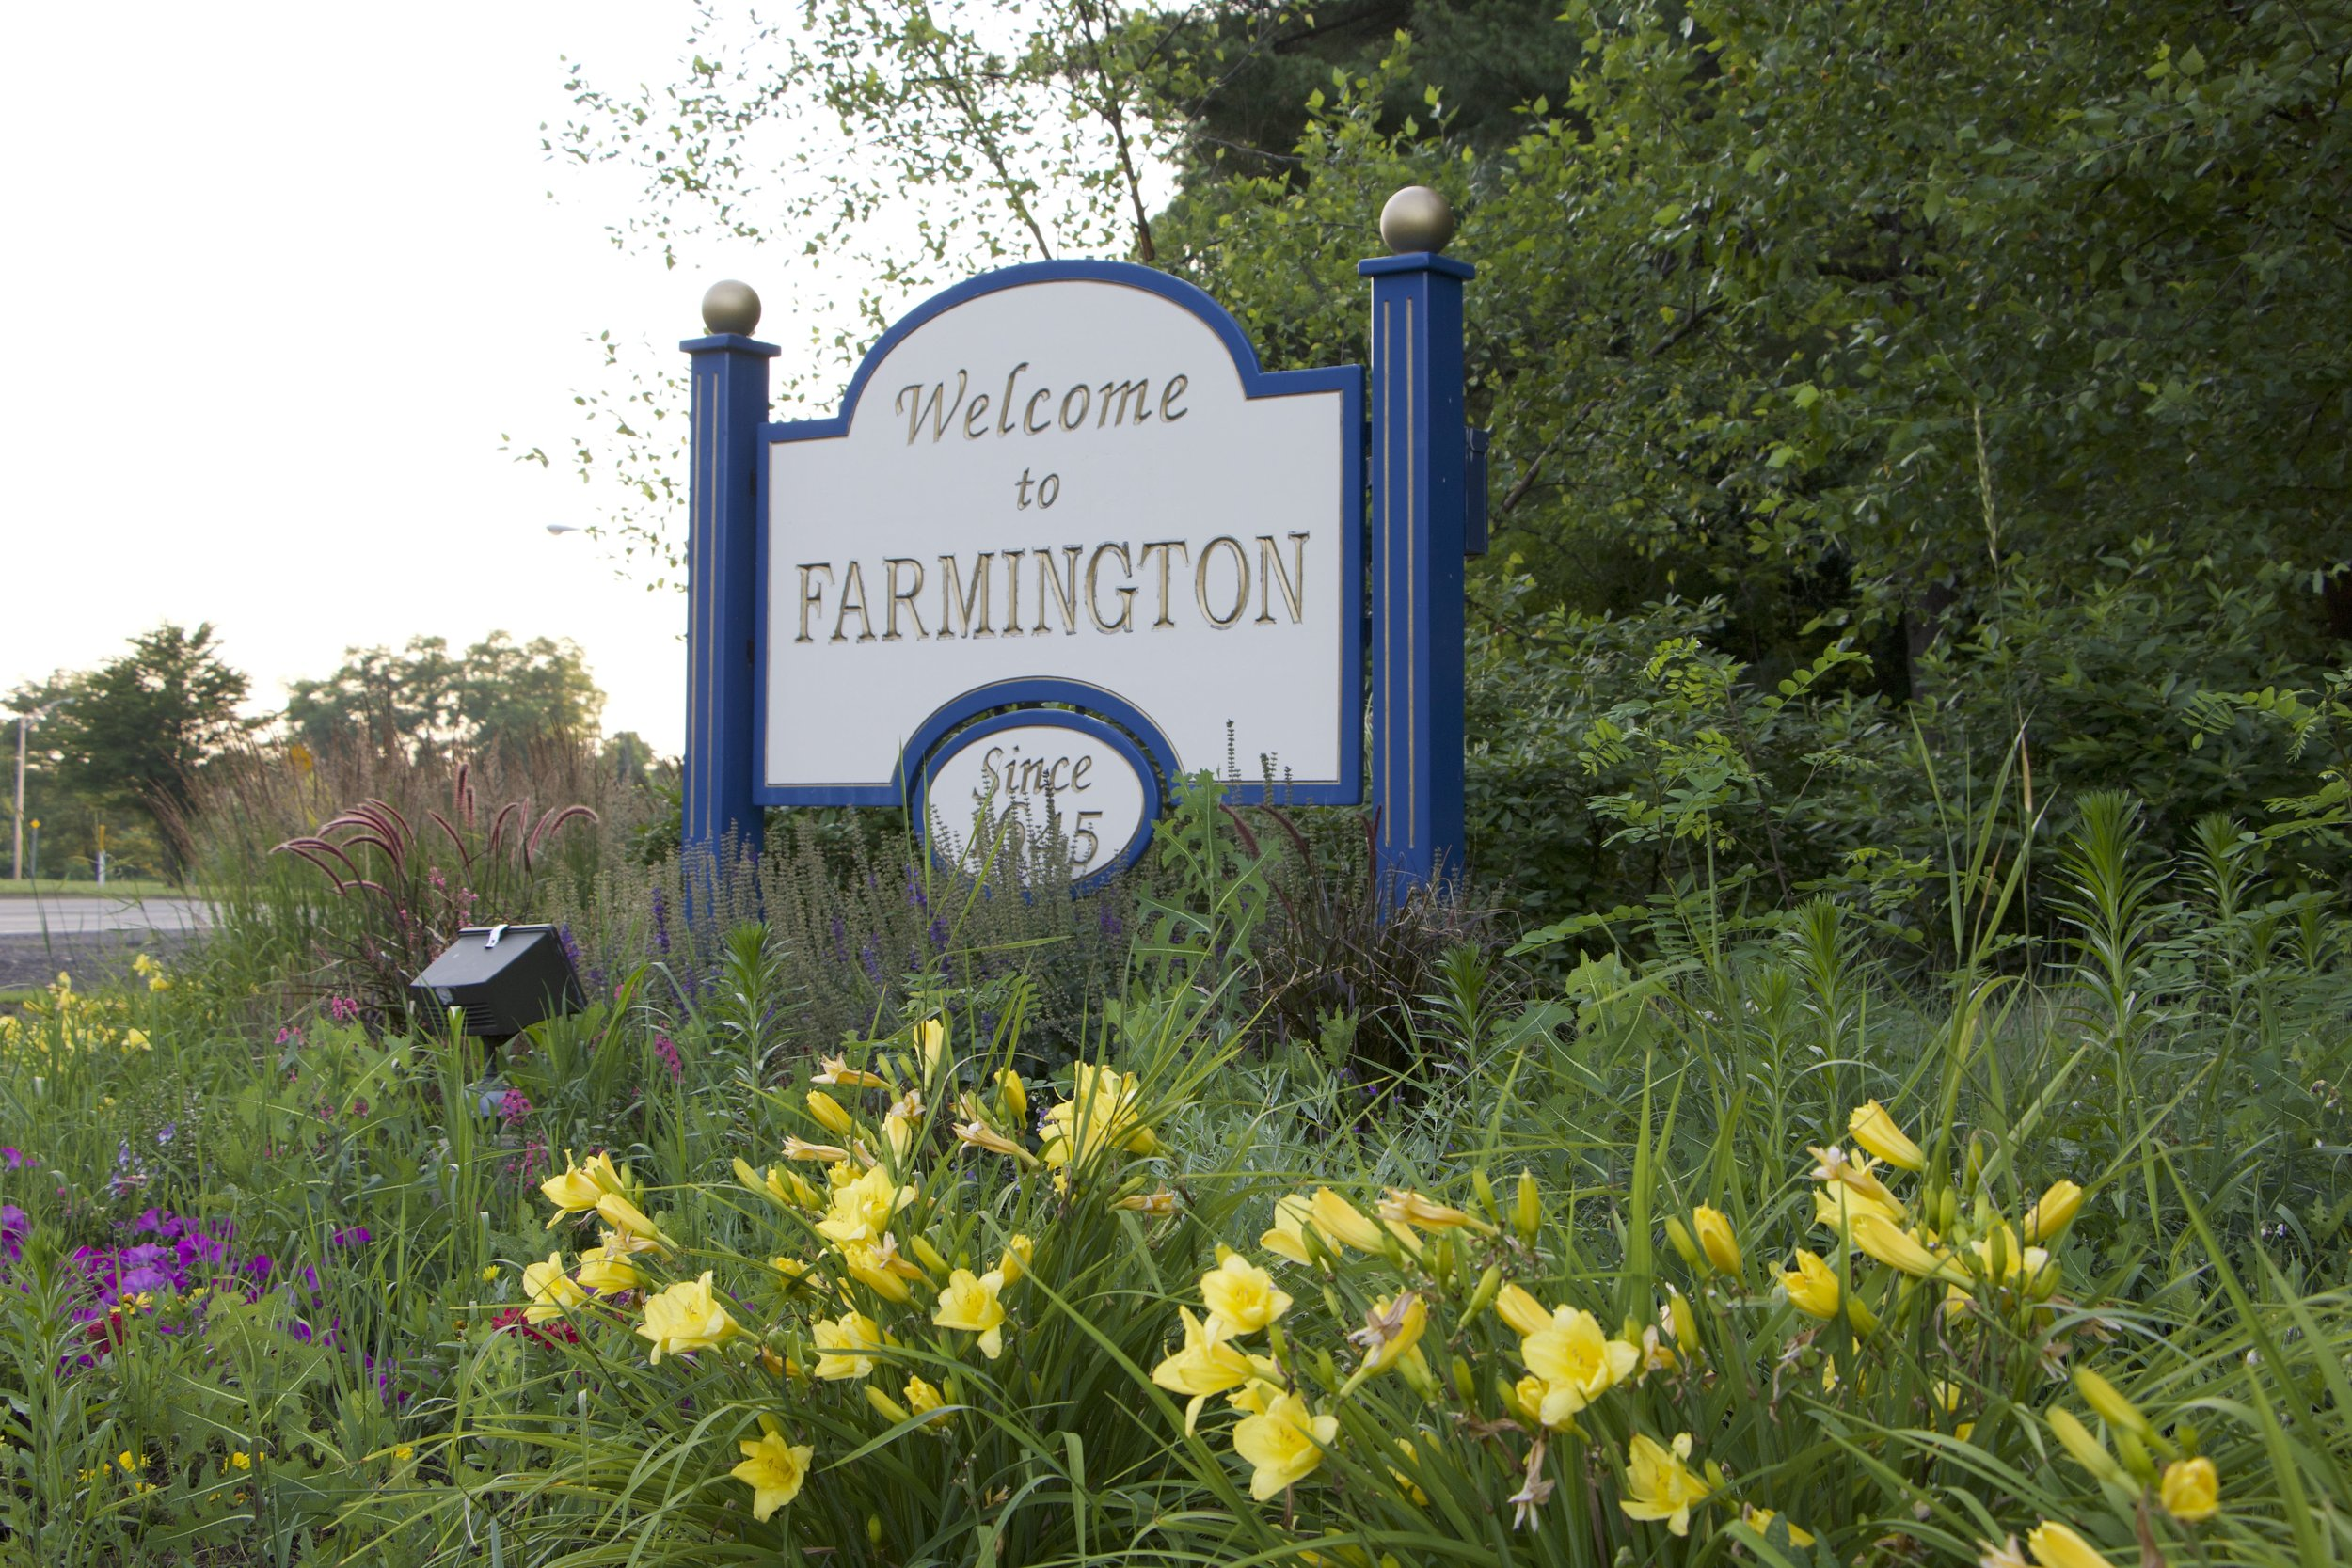 business support services - Farmington is dedicated to working with businesses by connecting them to resources and supporting them through processes to meet their immediate needs.